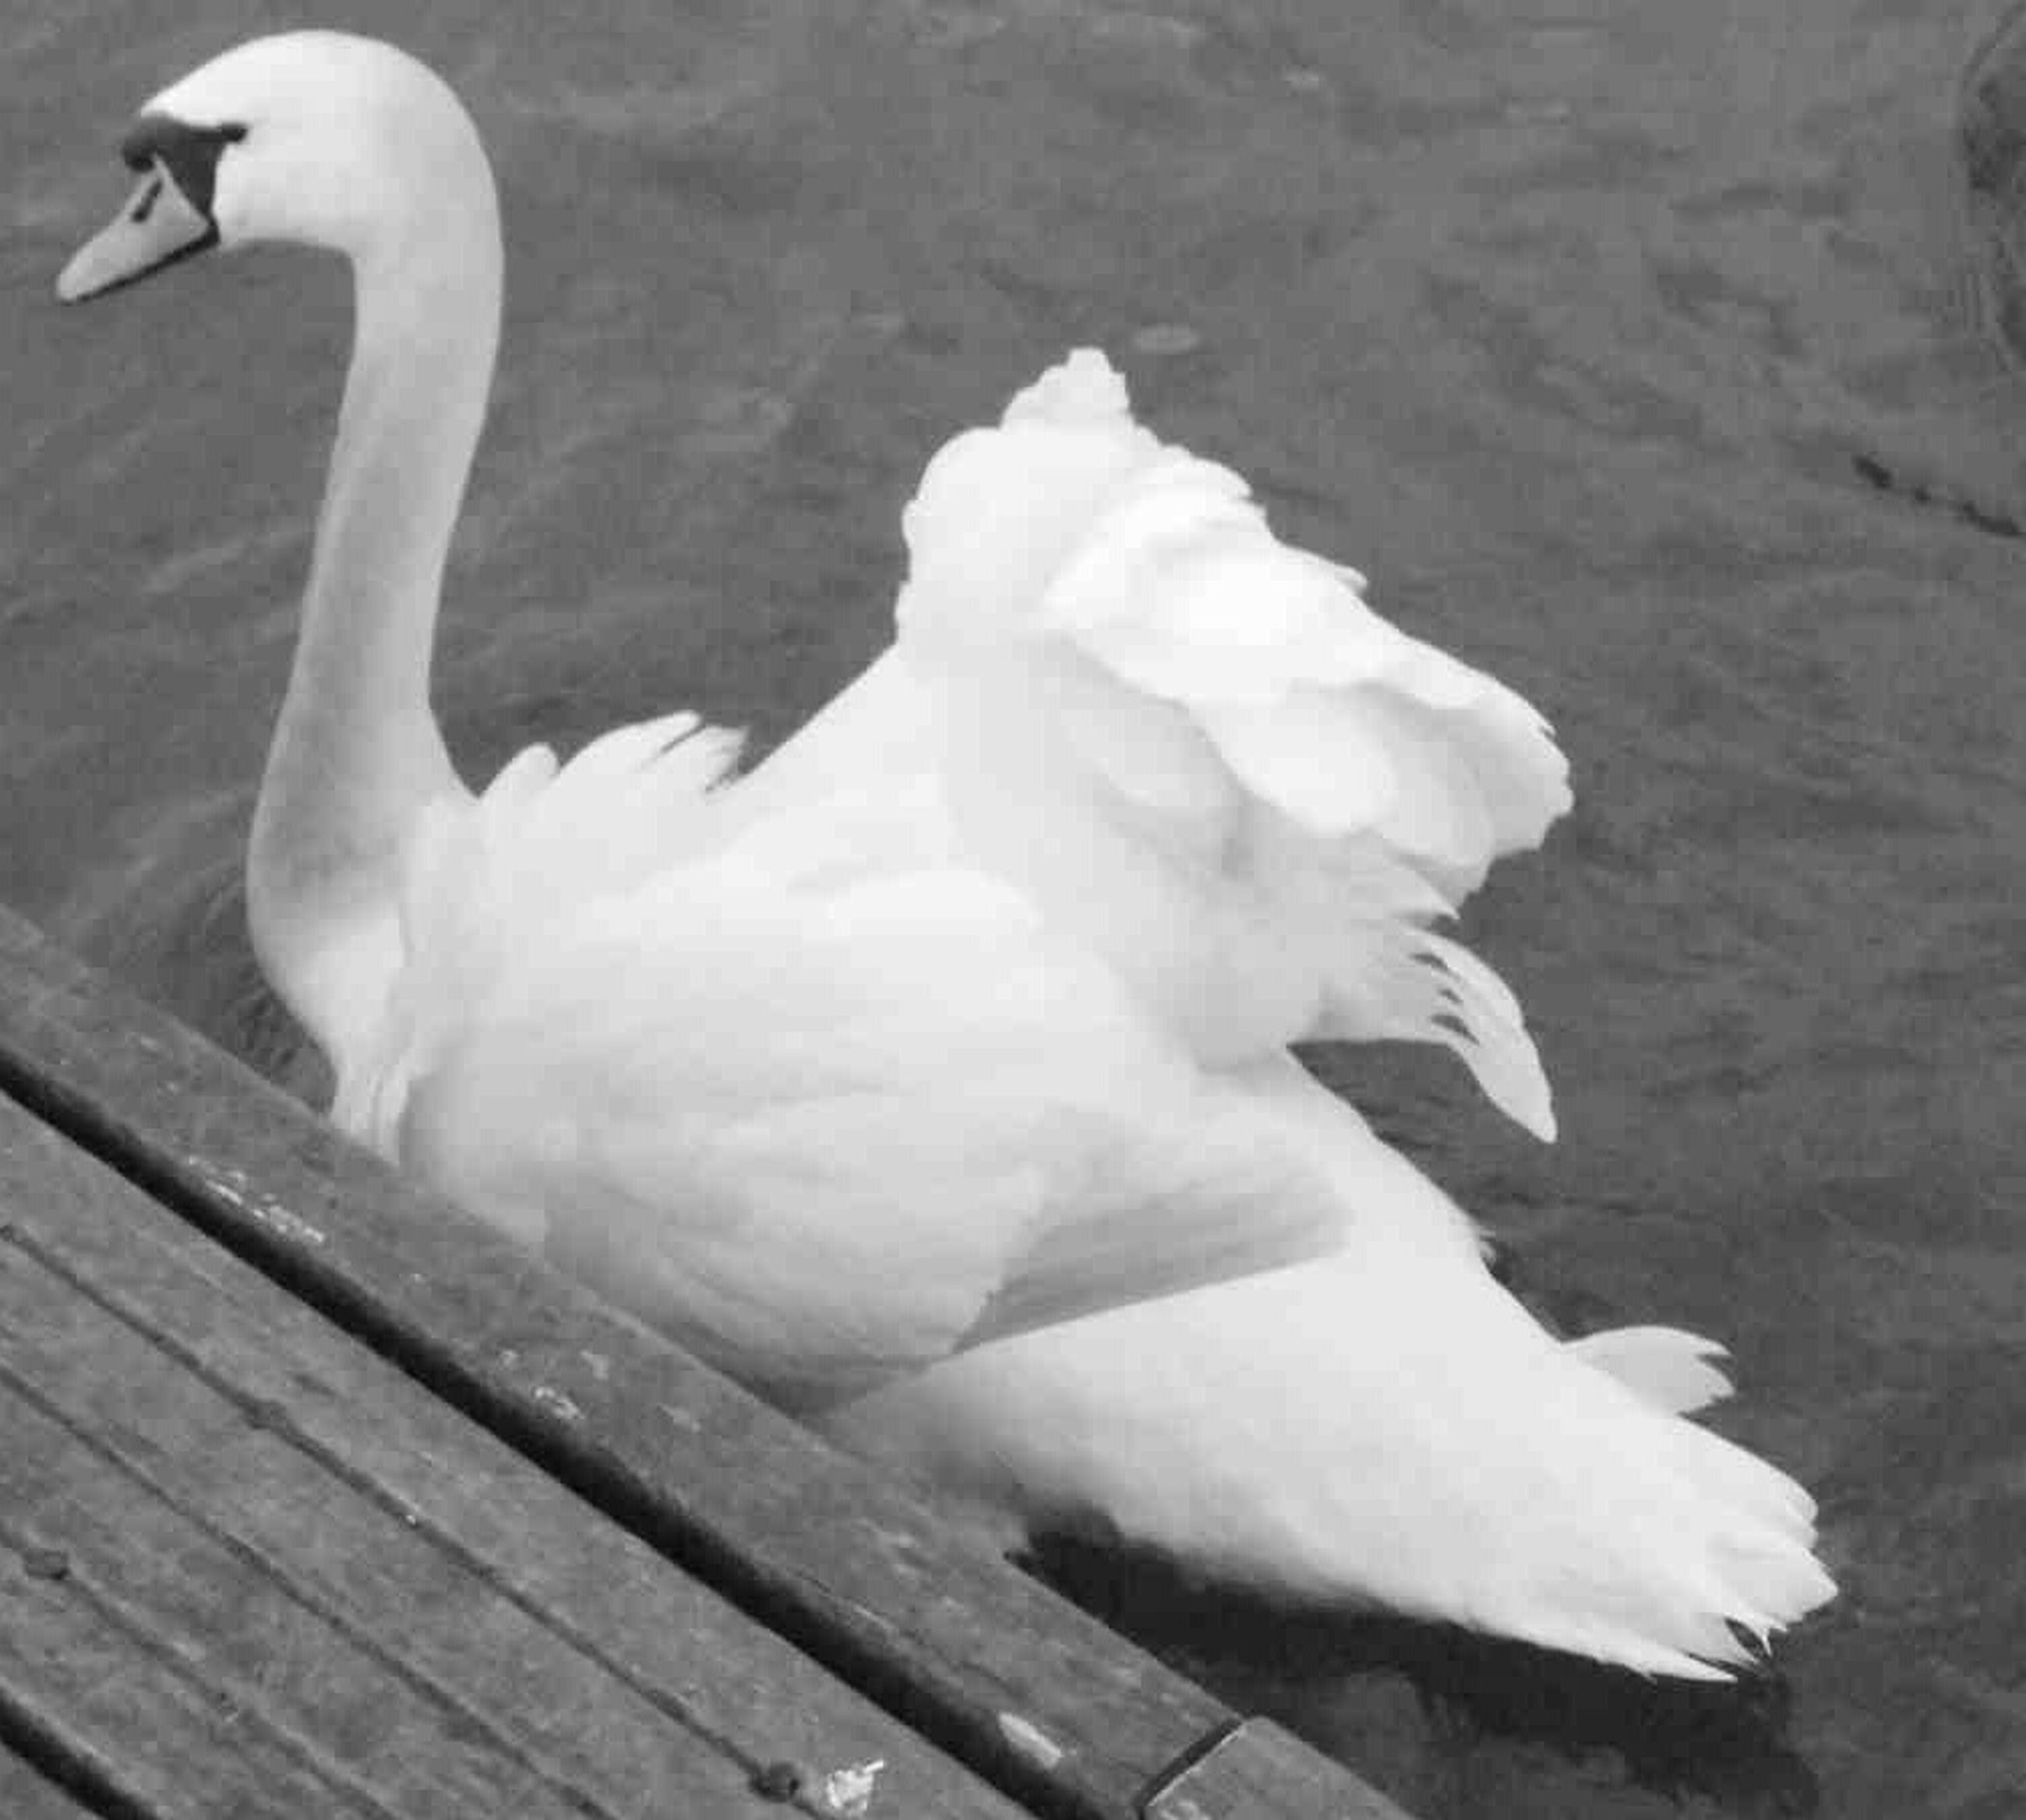 bird, animal themes, animals in the wild, wildlife, white color, swan, one animal, beak, nature, lake, close-up, white, outdoors, two animals, beauty in nature, water, day, side view, no people, full length